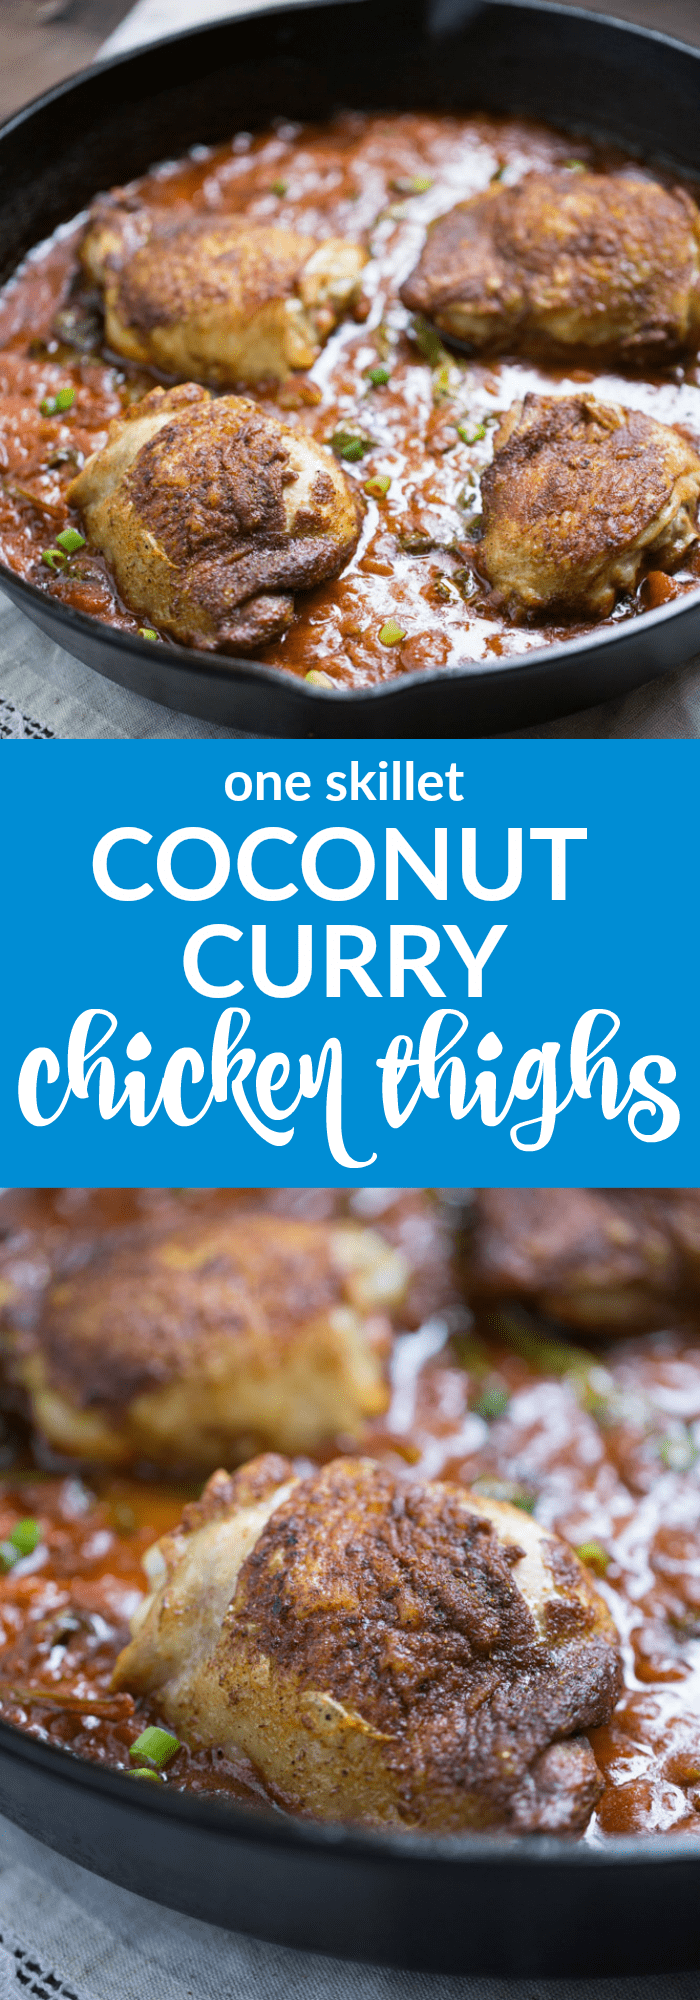 One Skillet Coconut Curry Chicken Salad (gluten free + paleo)